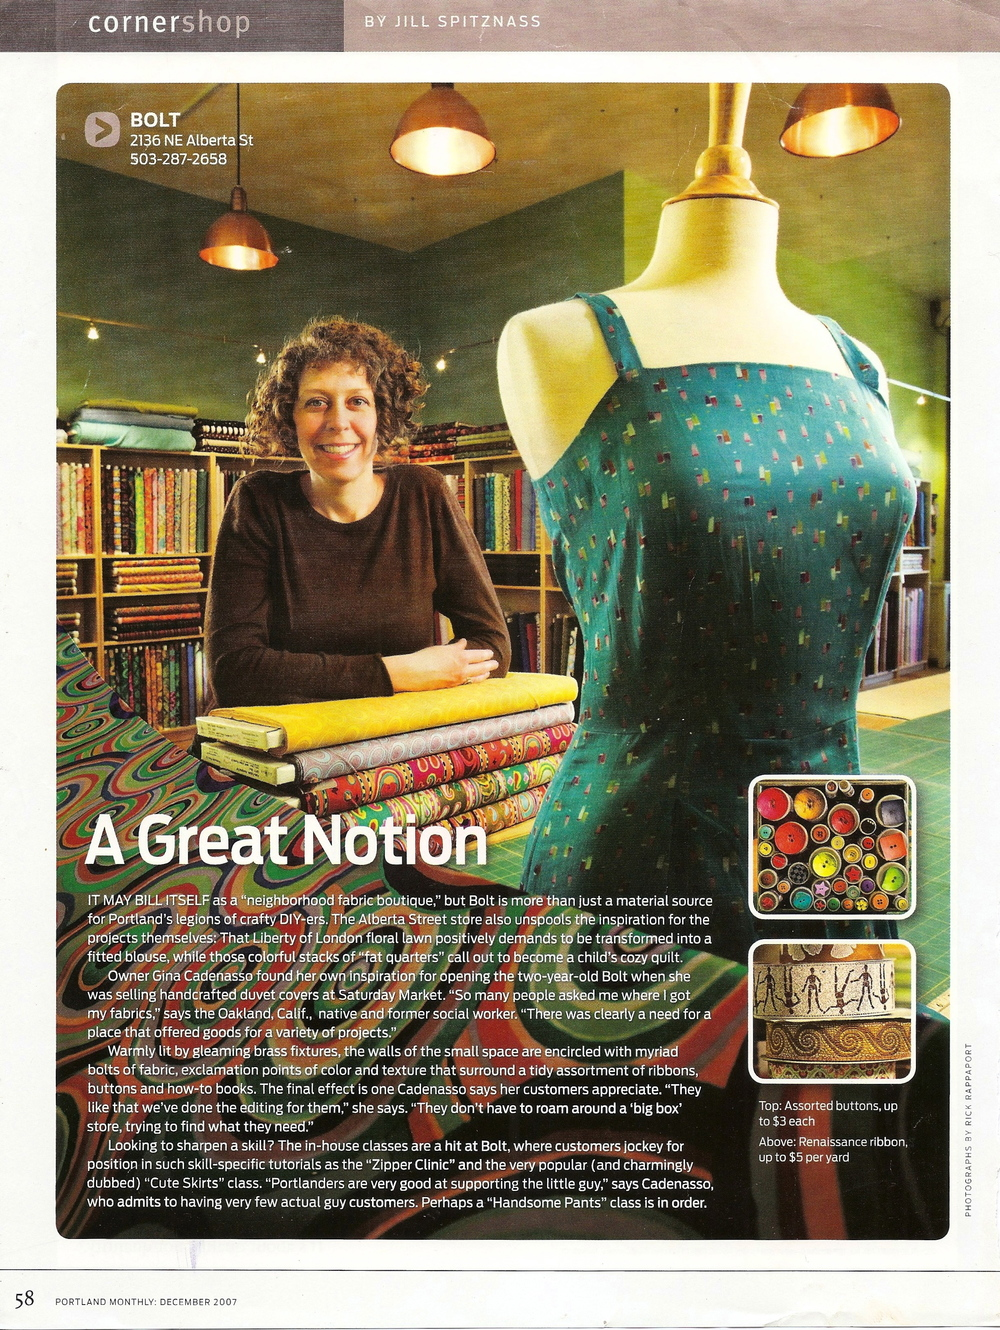 A Great Notion - Portland Monthly, Bolt Fabric Boutique